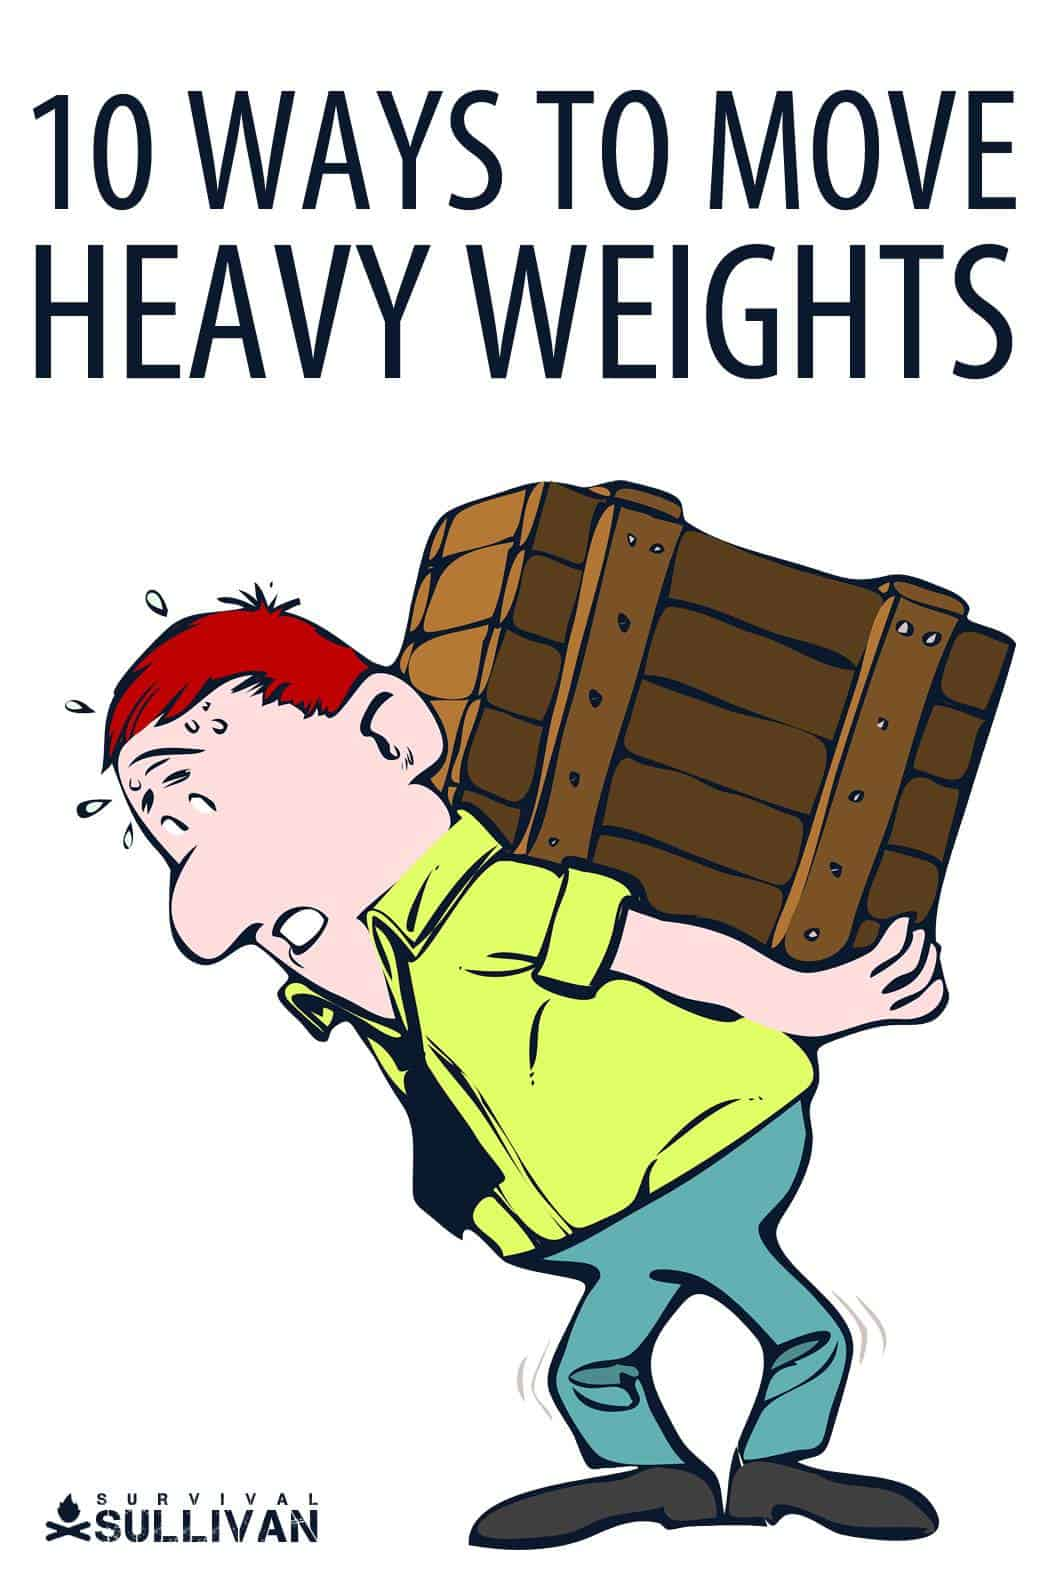 moving heavy weights Pinterest image